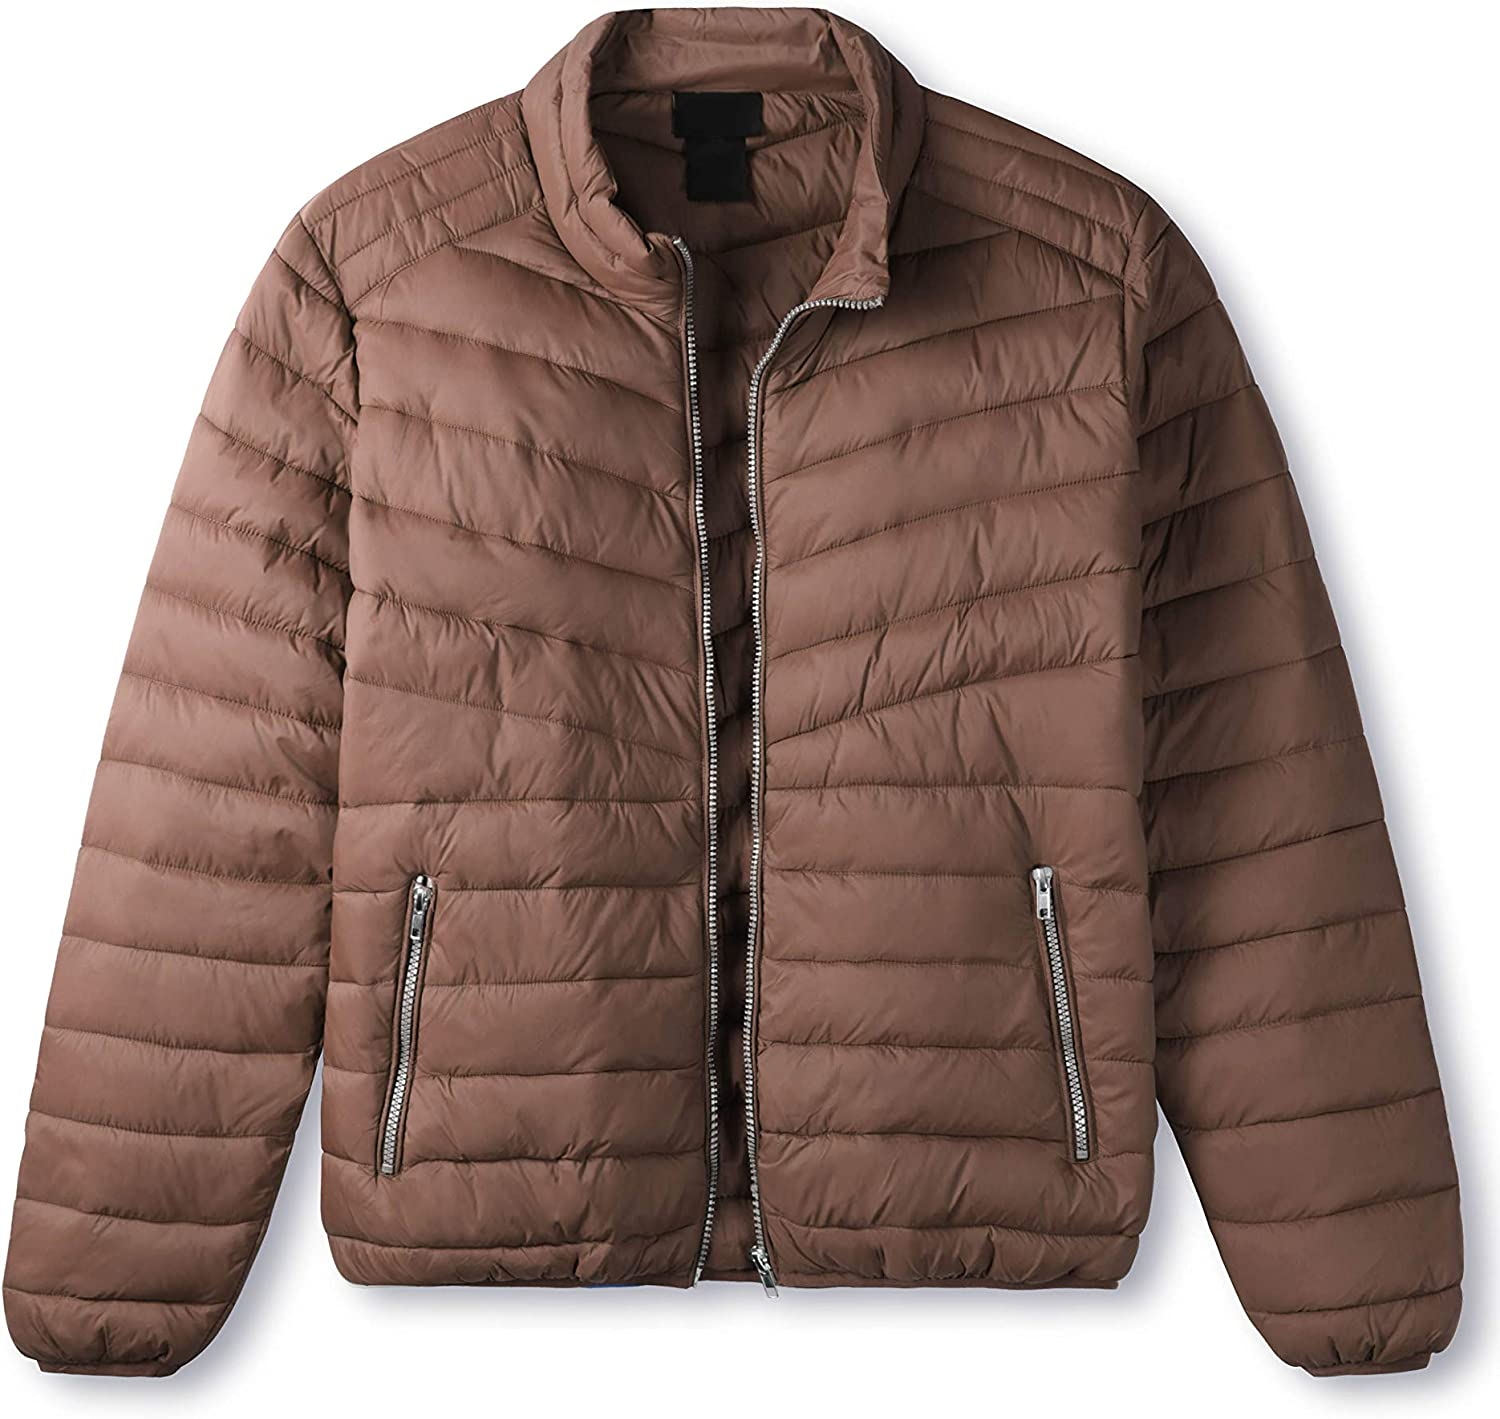 Hat and Beyond Mens Premium Lightweight Puffer Jacket Alternative Down Quilted Hiking Outerwear Parka Coat